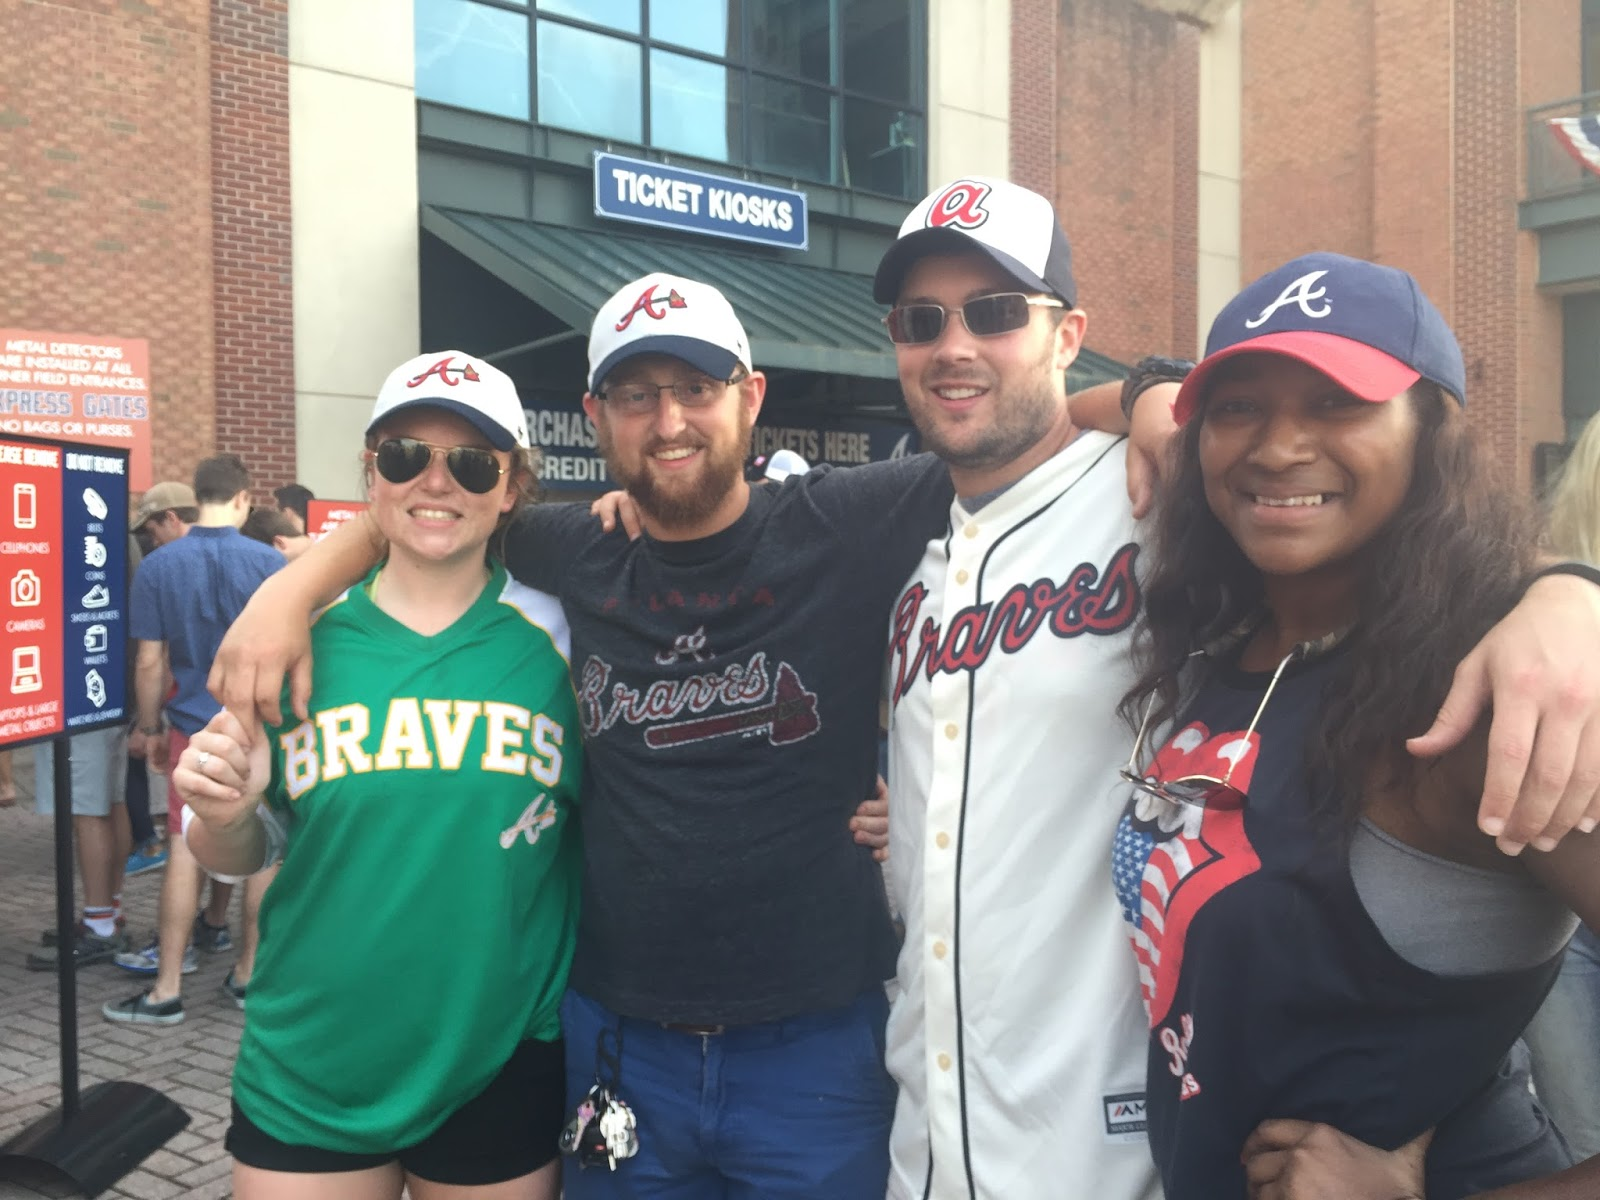 Atlanta Adventures: Braves - Operationtwenties.com